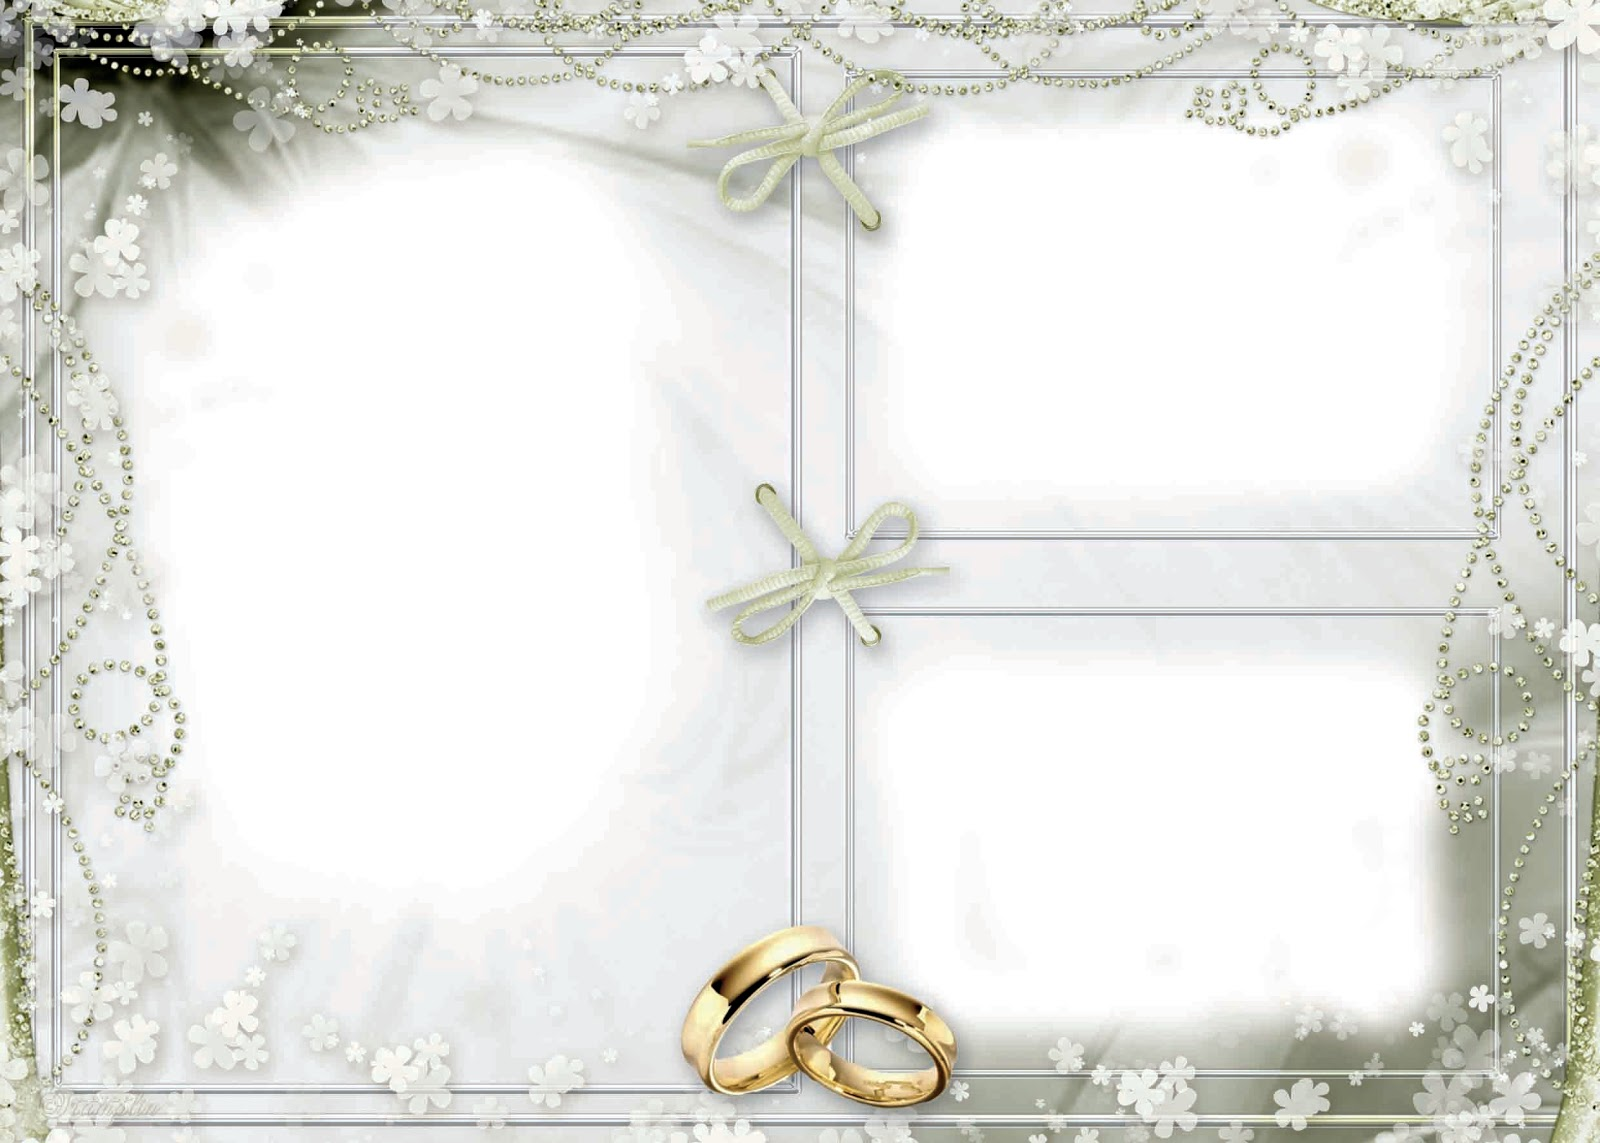 Picture Frame Wedding Invitations: Wedding Frame Transparent PNG Pictures